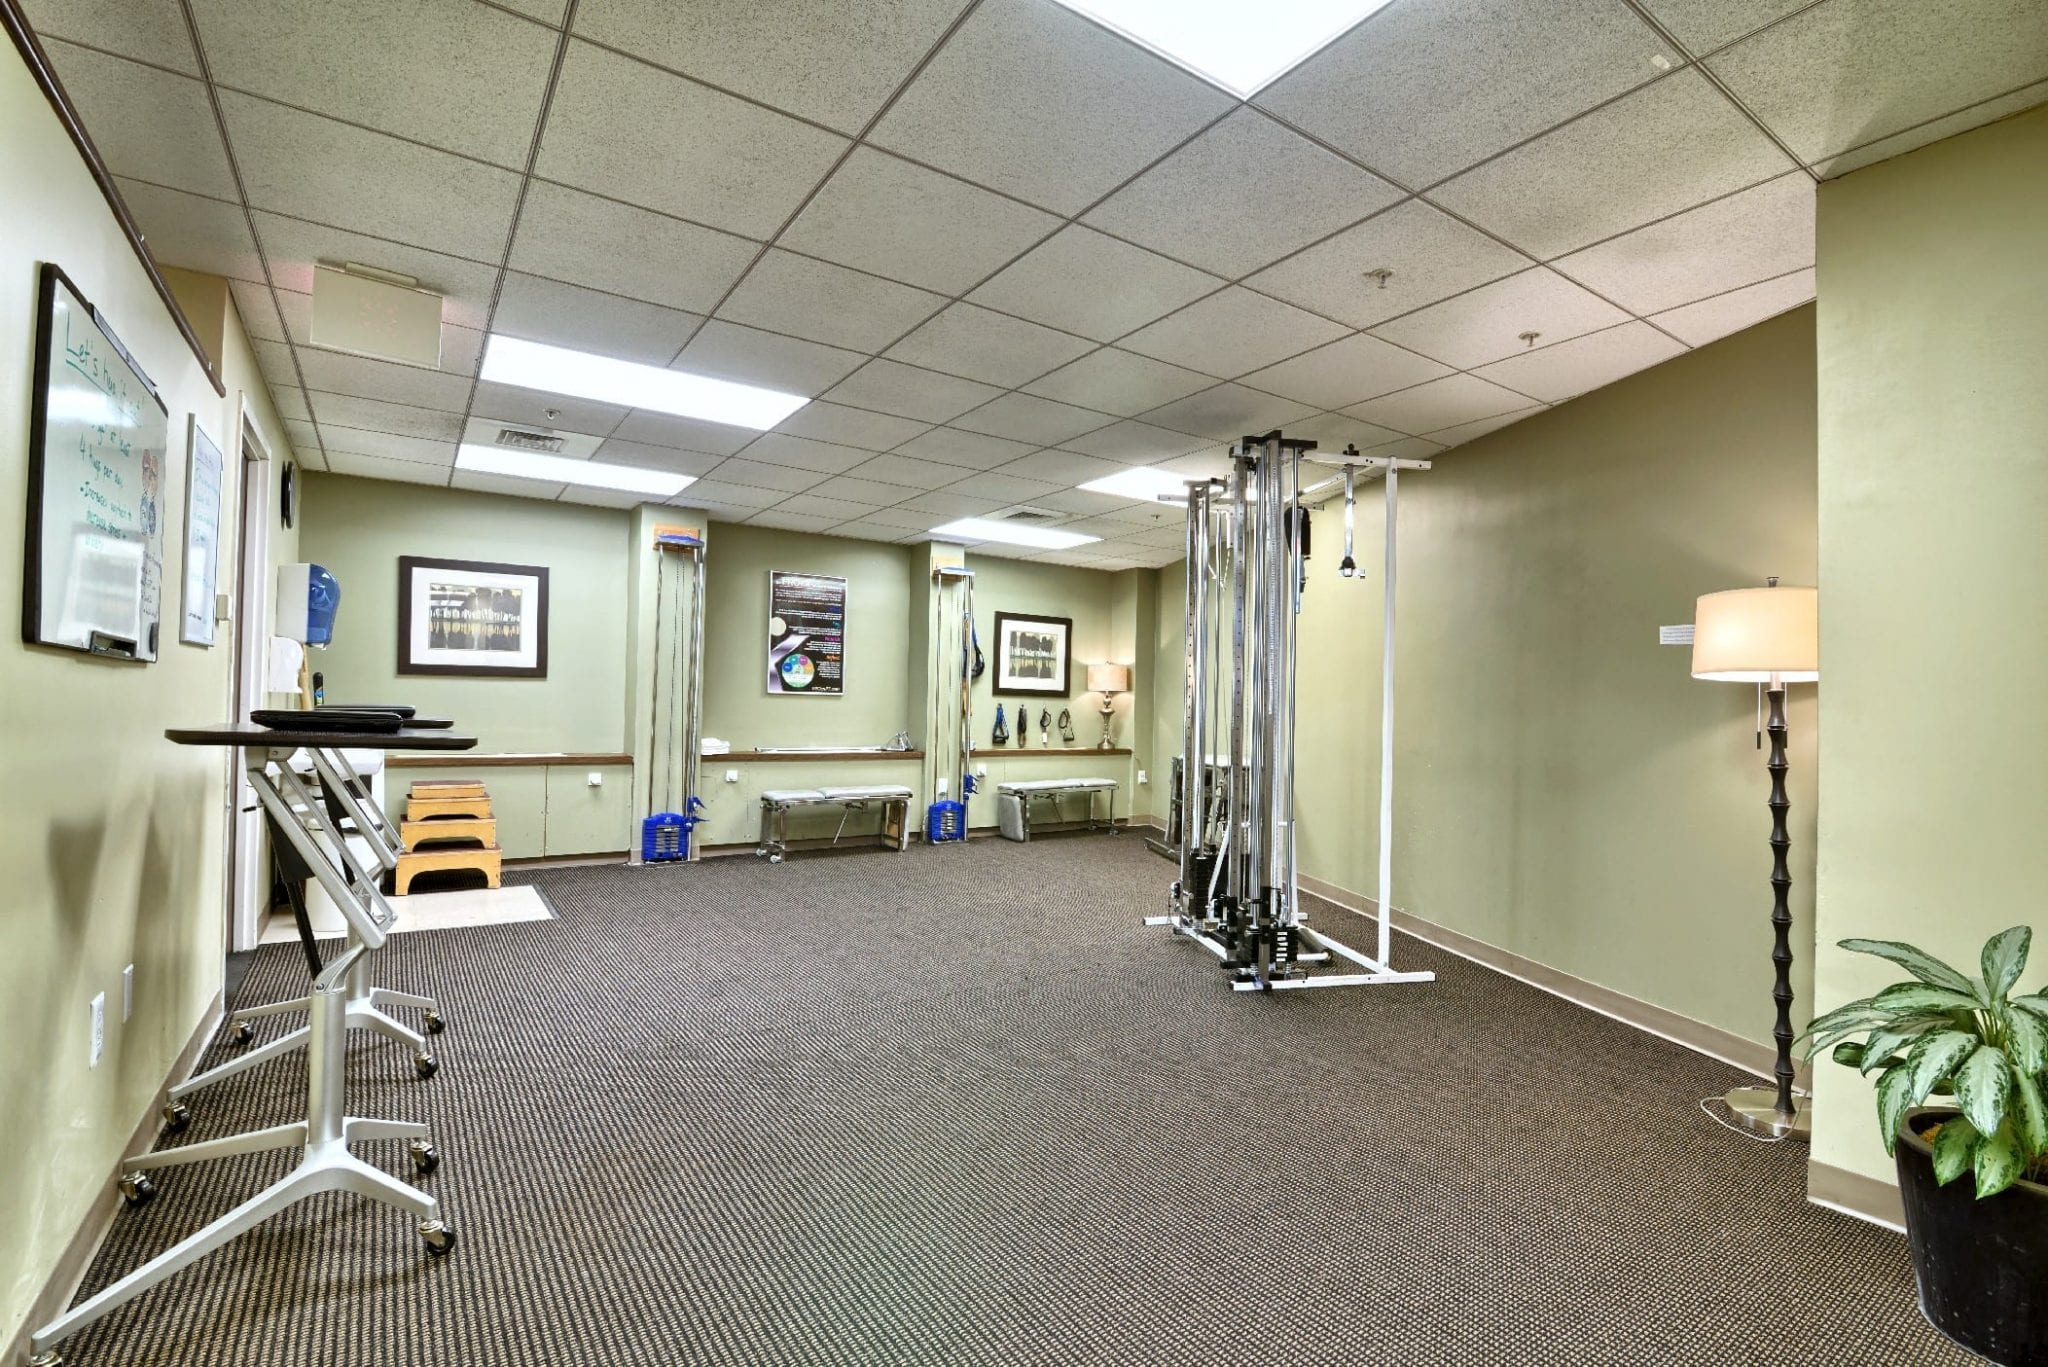 This image shows the interior of our physical therapy clinic in Boston, Massachusetts.